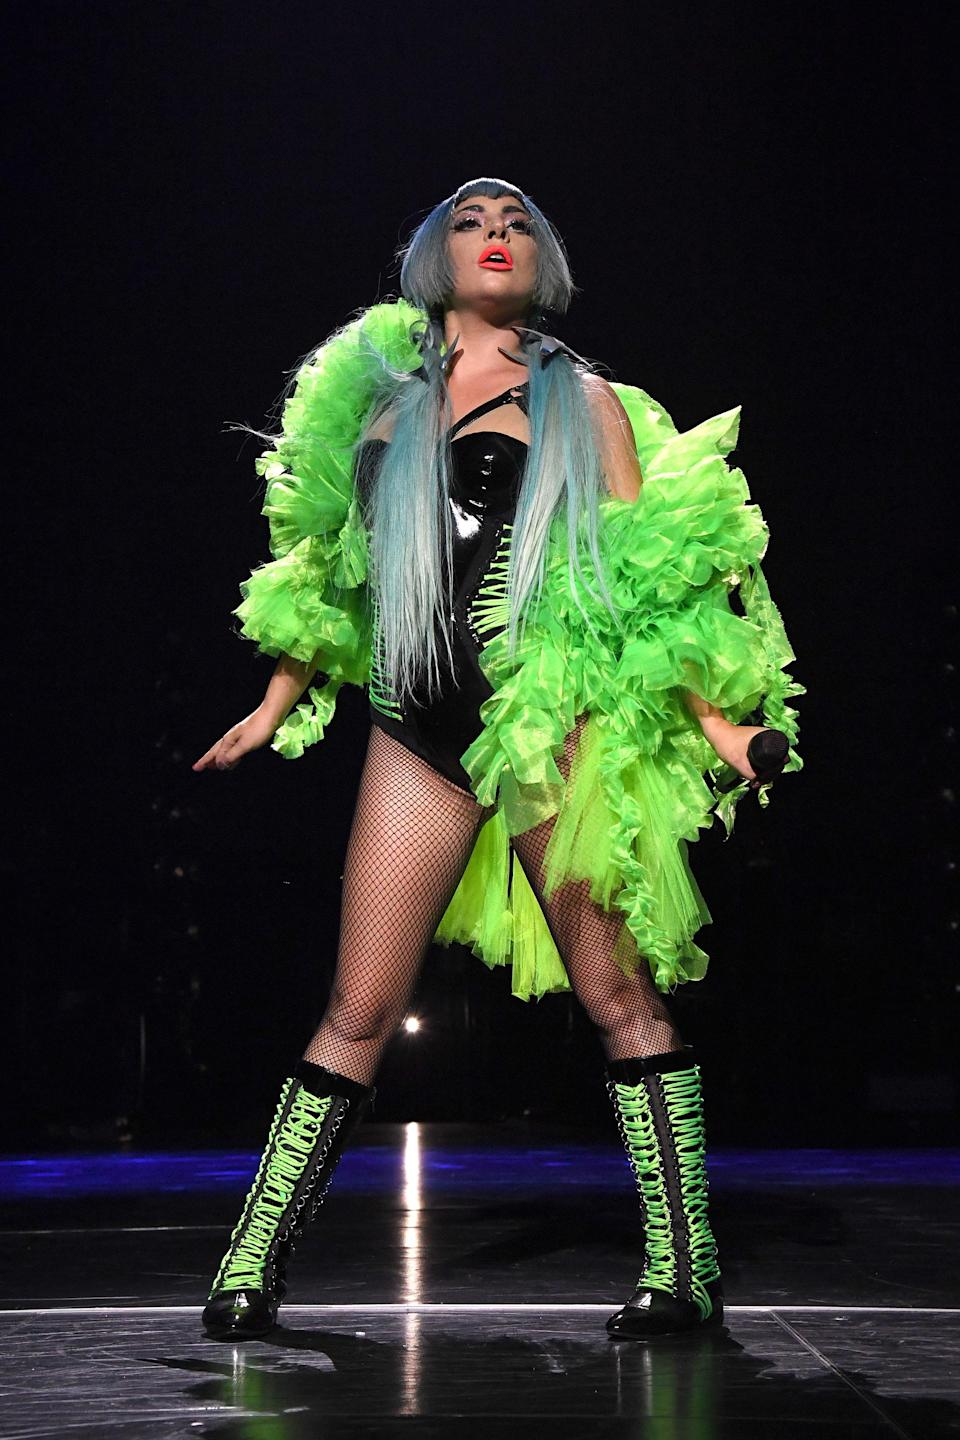 Who knew neon green feathers could be so fashionable? BRB, I will be wearing this to every club once they reopen.